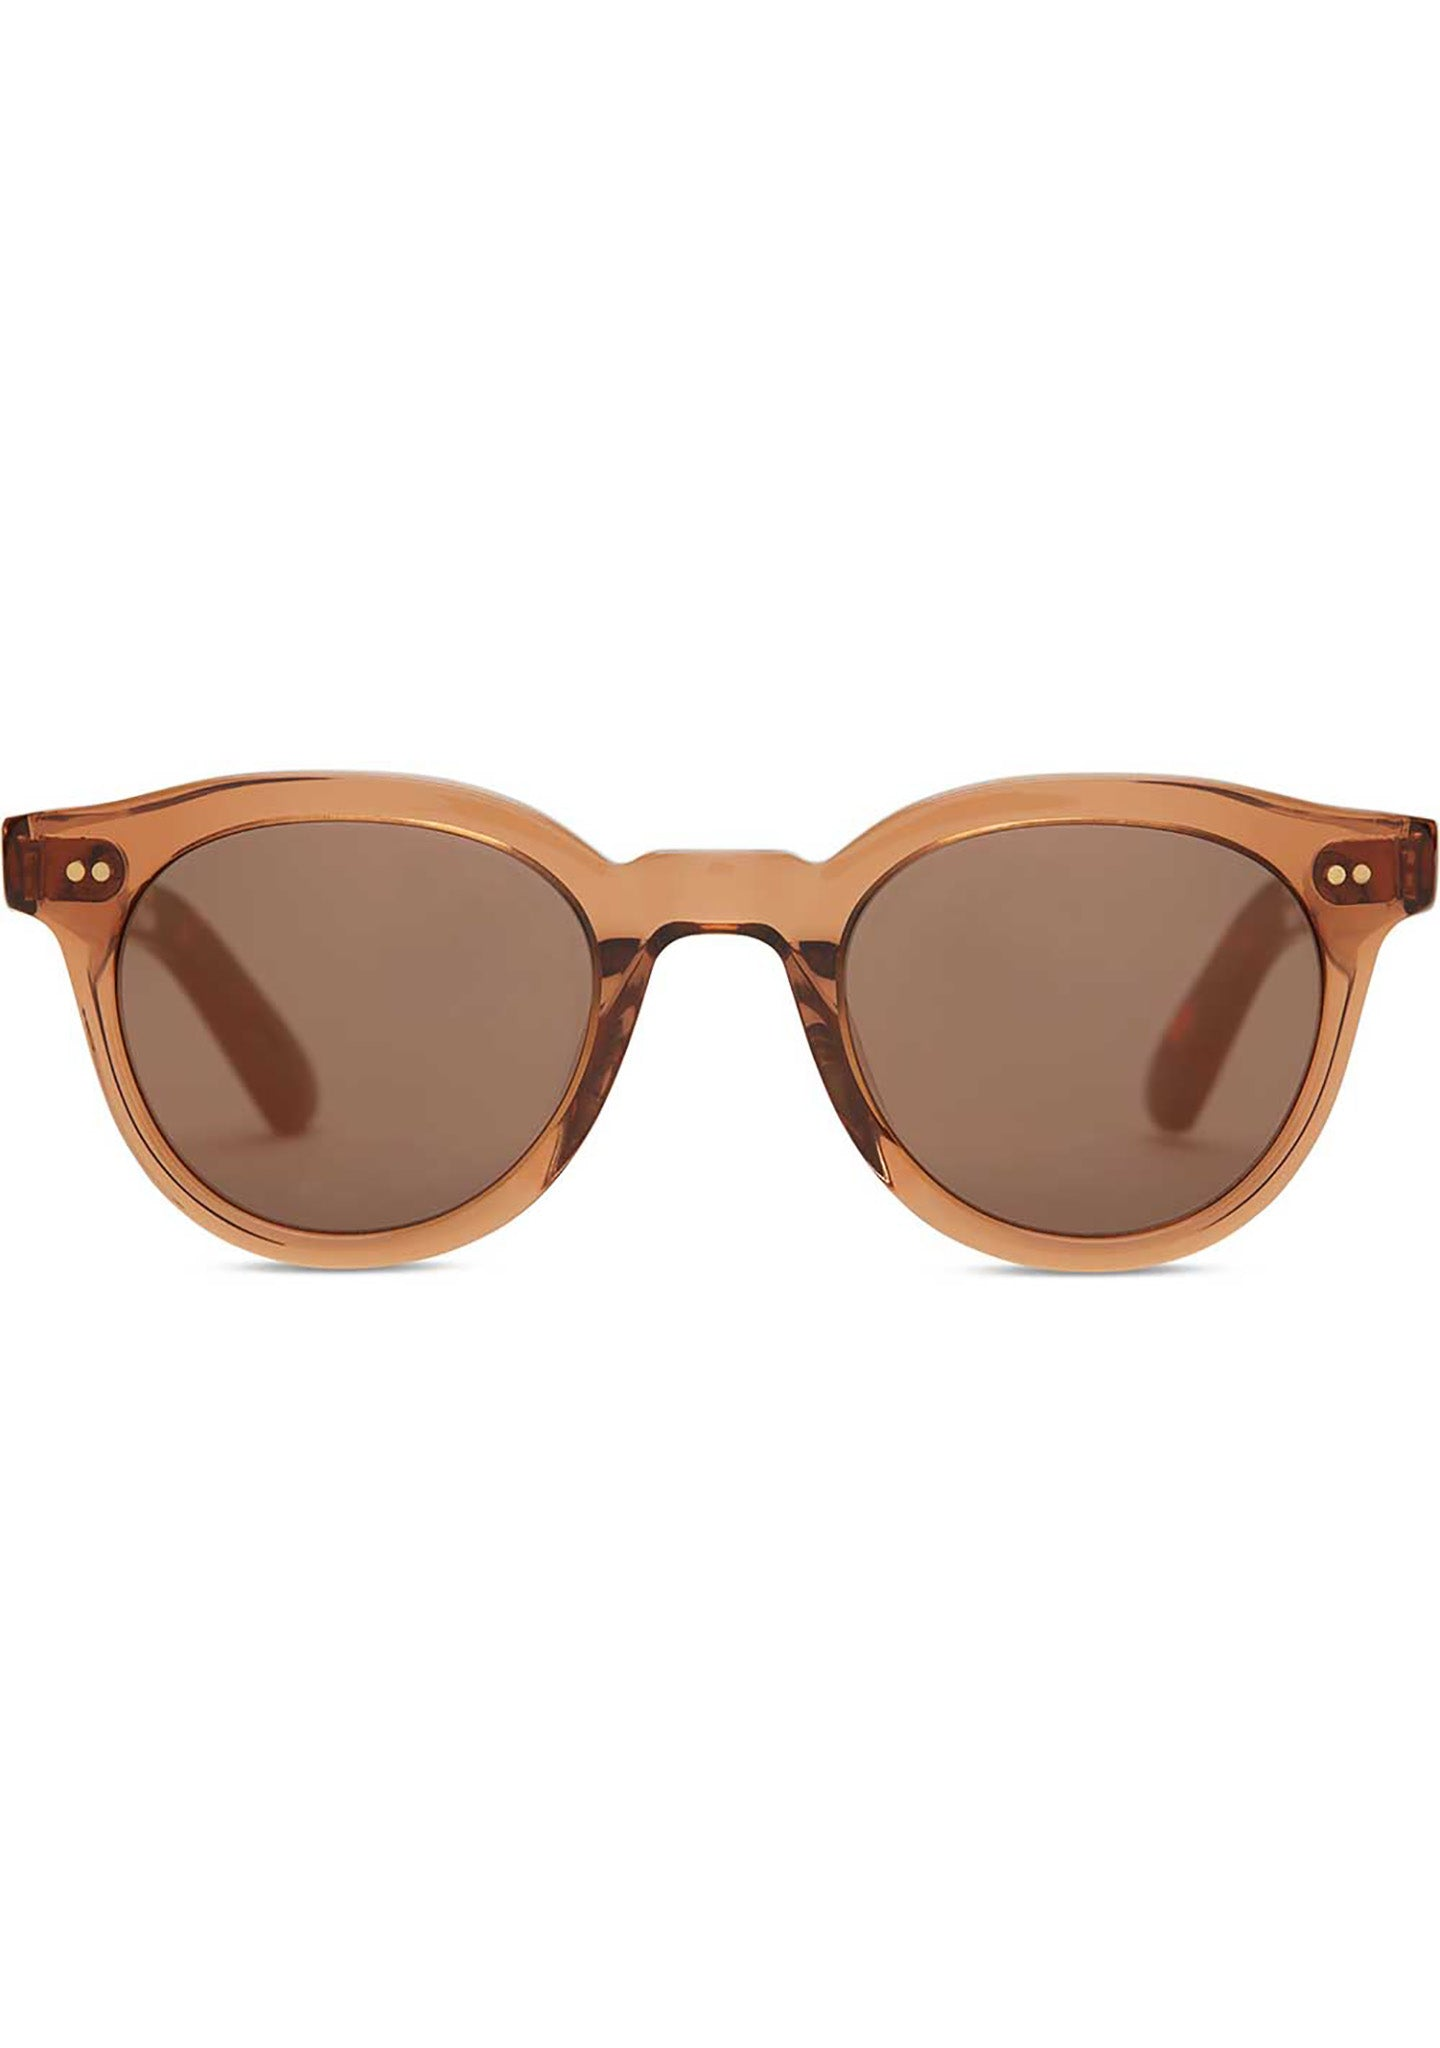 TOMS Fin Sunglasses in Ash Brown Crystal